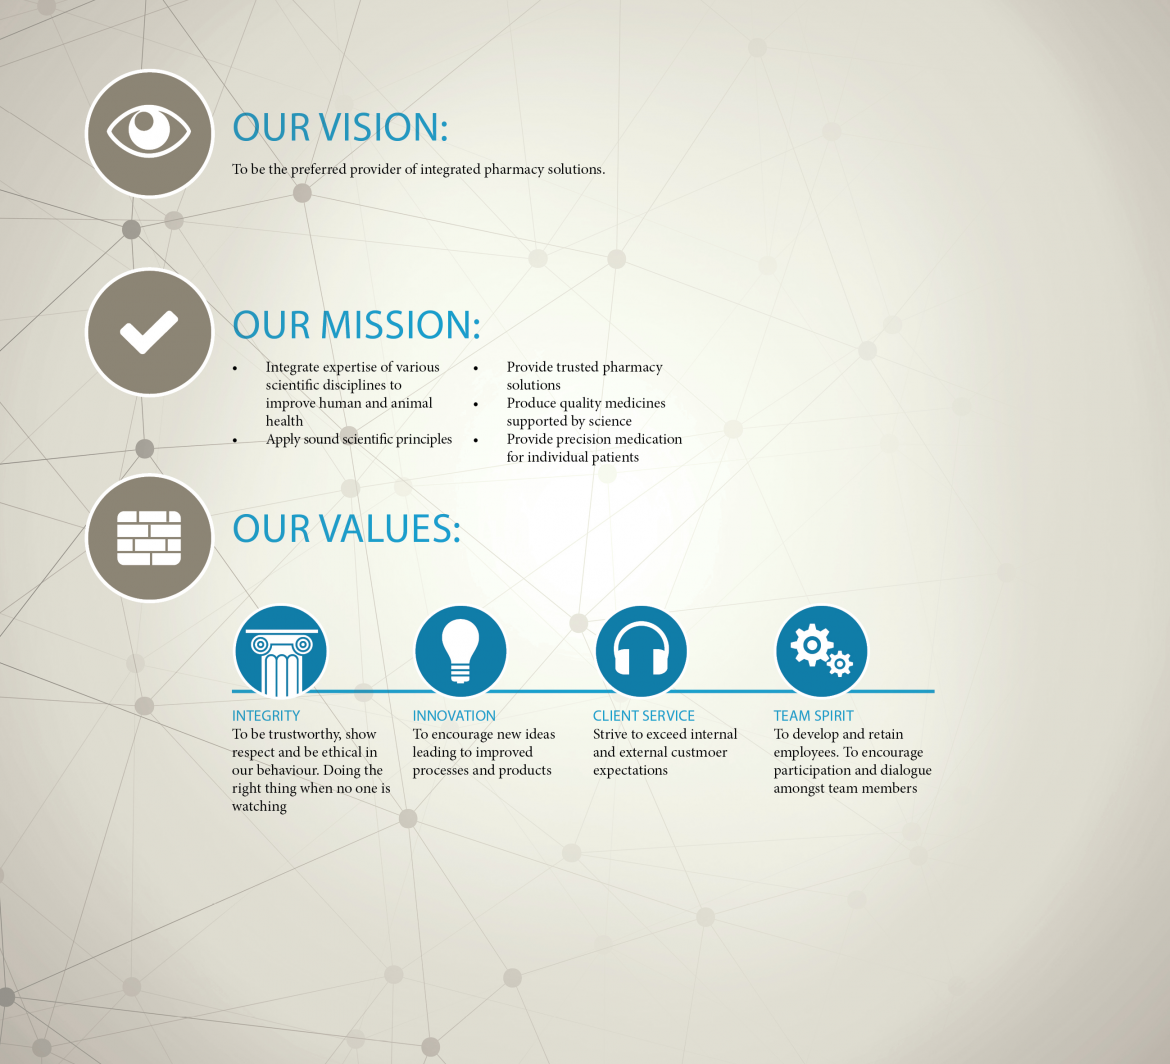 OUR VISION To be the preferred provider of integrated pharmacy solutions. OUR MISSION: Integrate expertise of various scientific disciplines to improve human and animal health • Apply sound scientific principles • Provide trusted pharmacy solutions • Produce quality medicines supported by science • Provide precision medication for individual patients OUR VALUES: INTEGRITY To be trustworthy, show respect and be ethical in our behaviour, conforming our words with our actions INNOVATION To encourage new concepts leading to alternative processes and products CLIENT SERVICE To provide both a professional internal and external customer service of quality TEAM SPIRIT To develop and retain employees; and to encourage participation and dialogue amongst team members